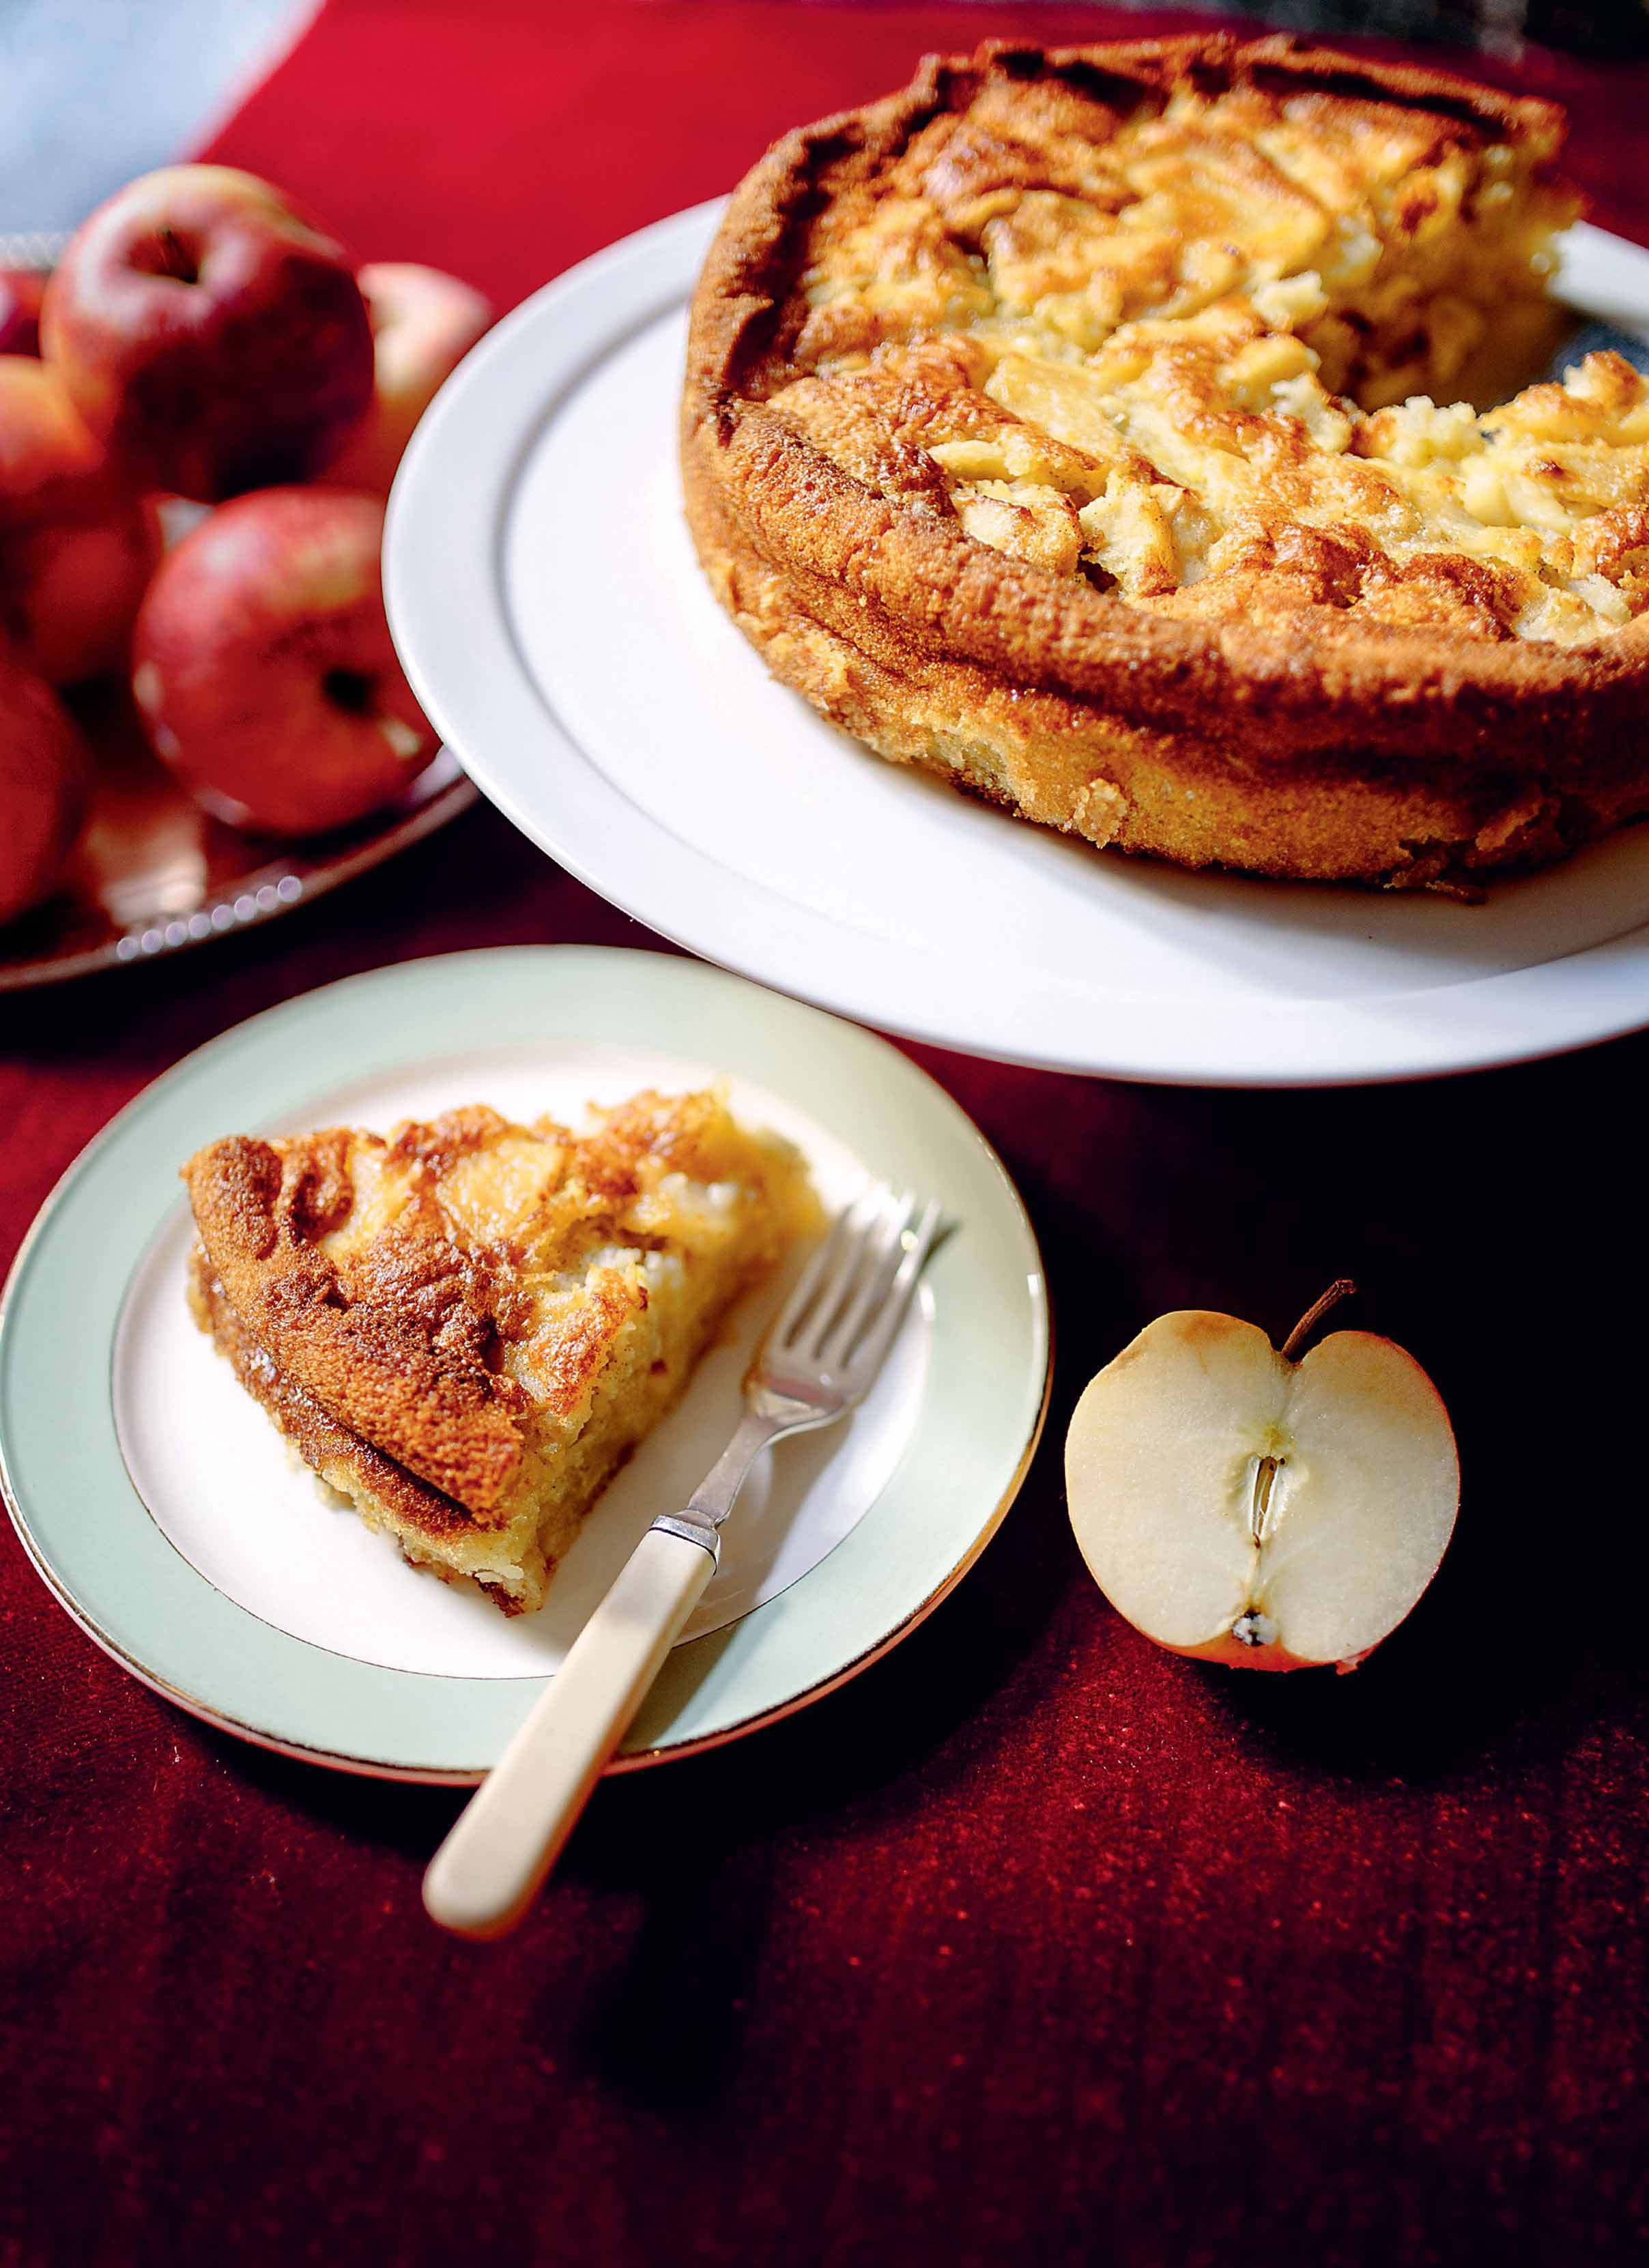 Aunt rose's apple cake